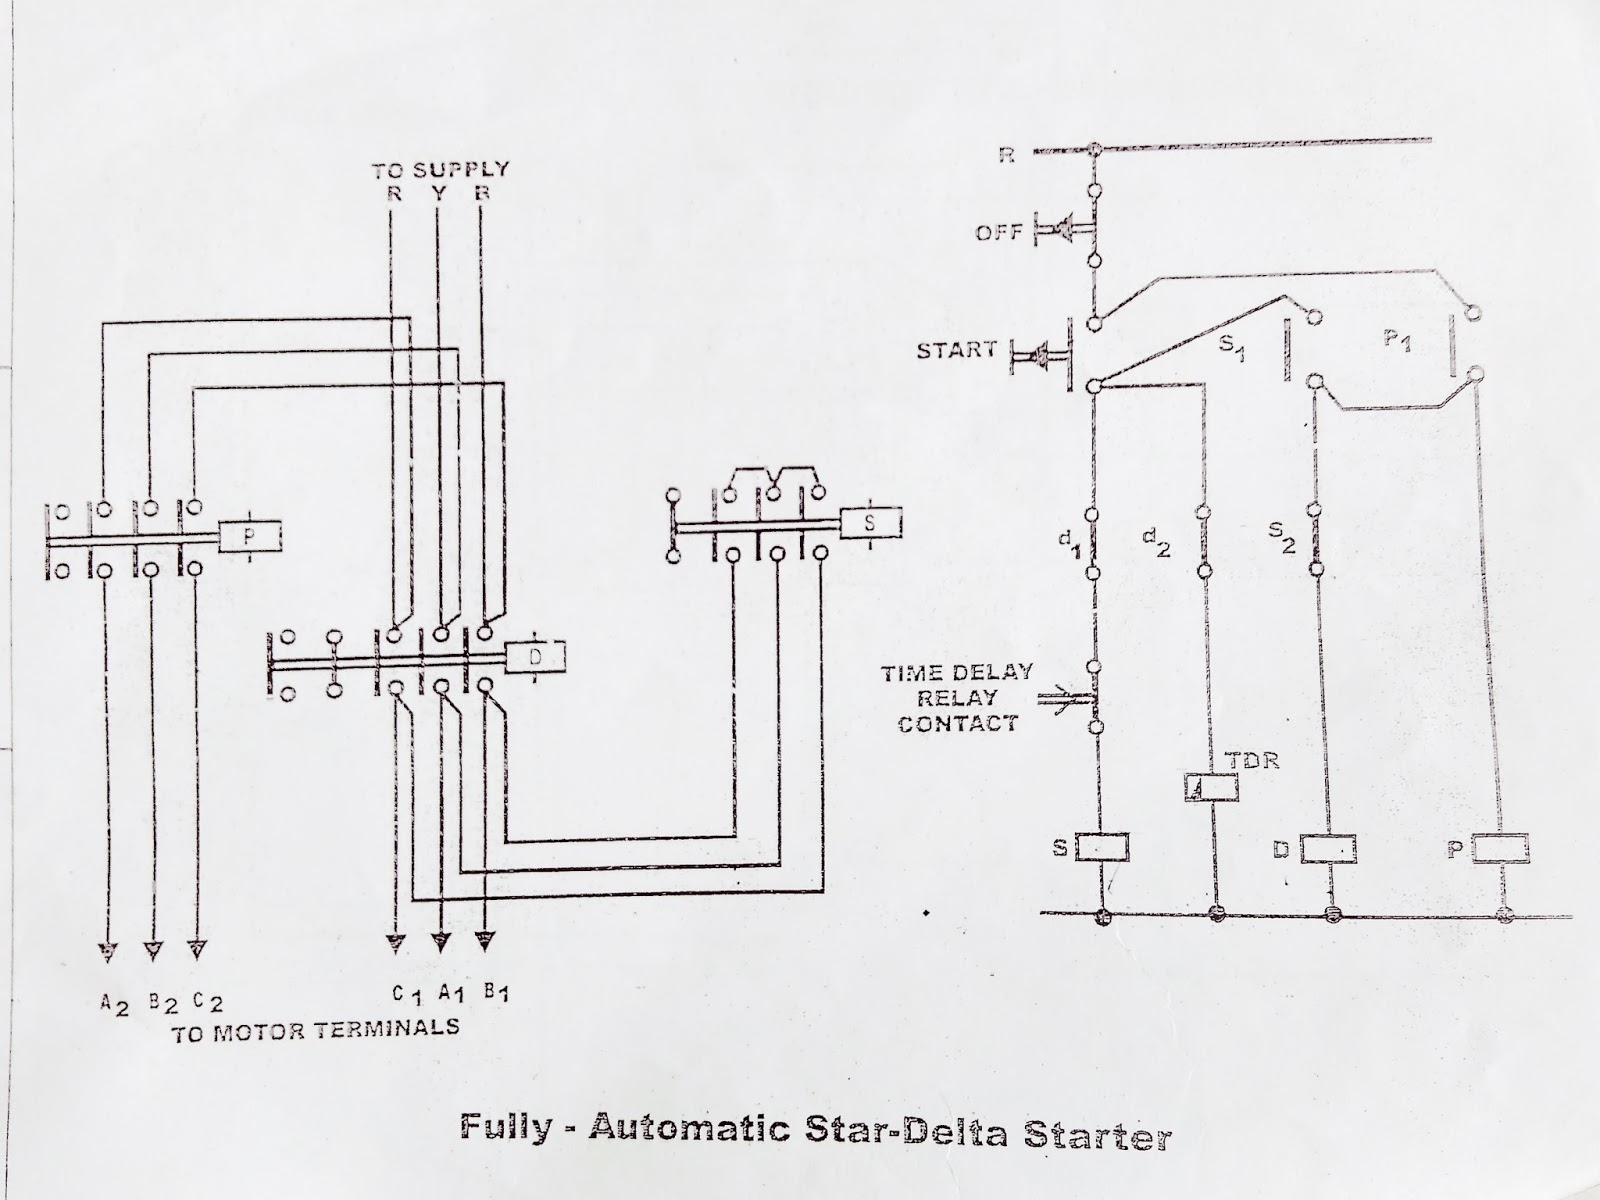 star delta wiring diagram motor red riding hood plot starter control circuit